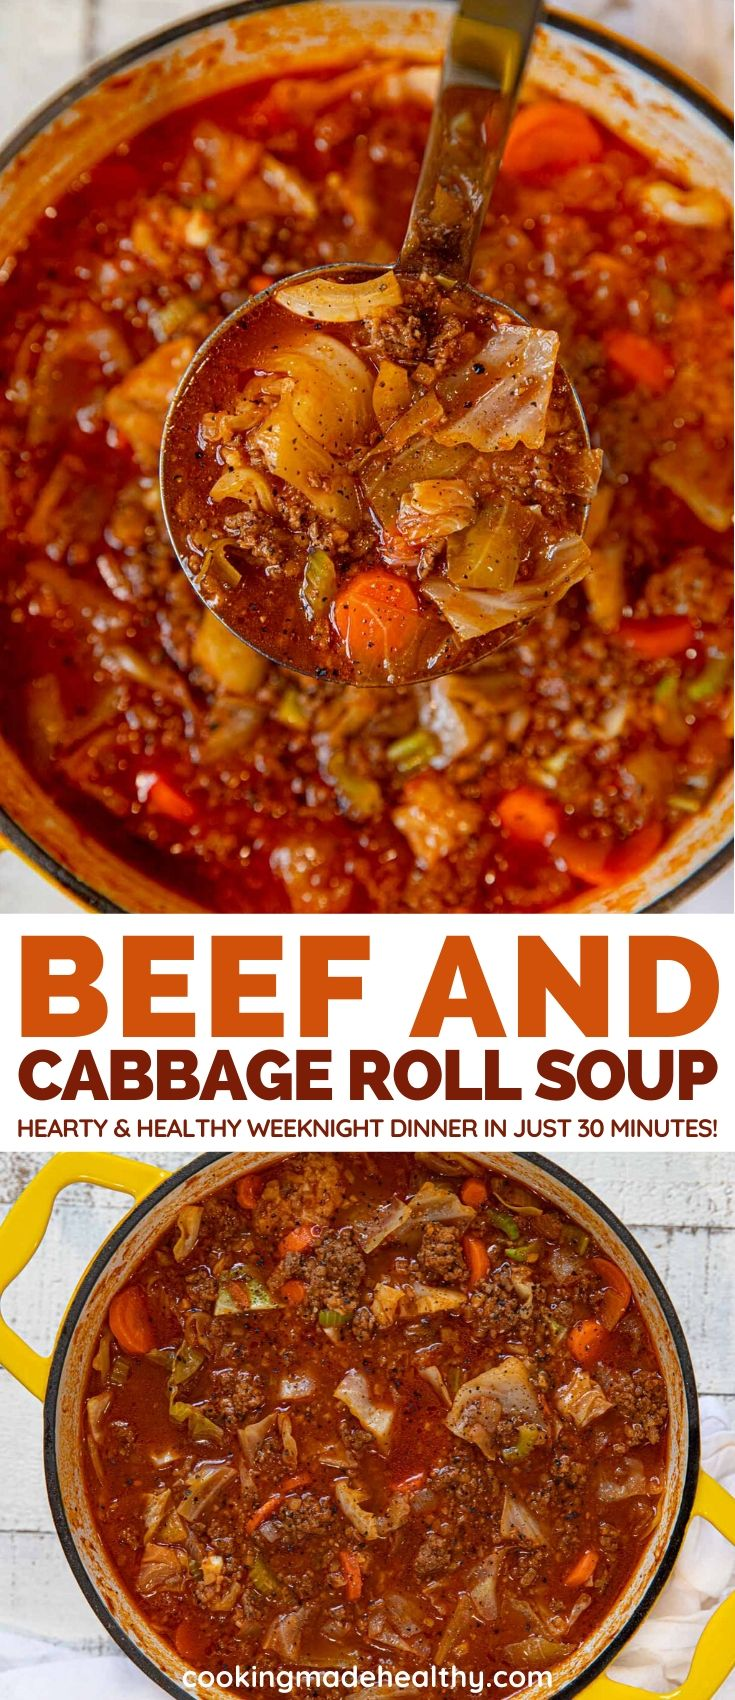 Beef and Cabbage Roll Soup is a  hearty and healthy weeknight dinner with ground beef, onion, carrots, and cabbage you can make in just 30 minutes.